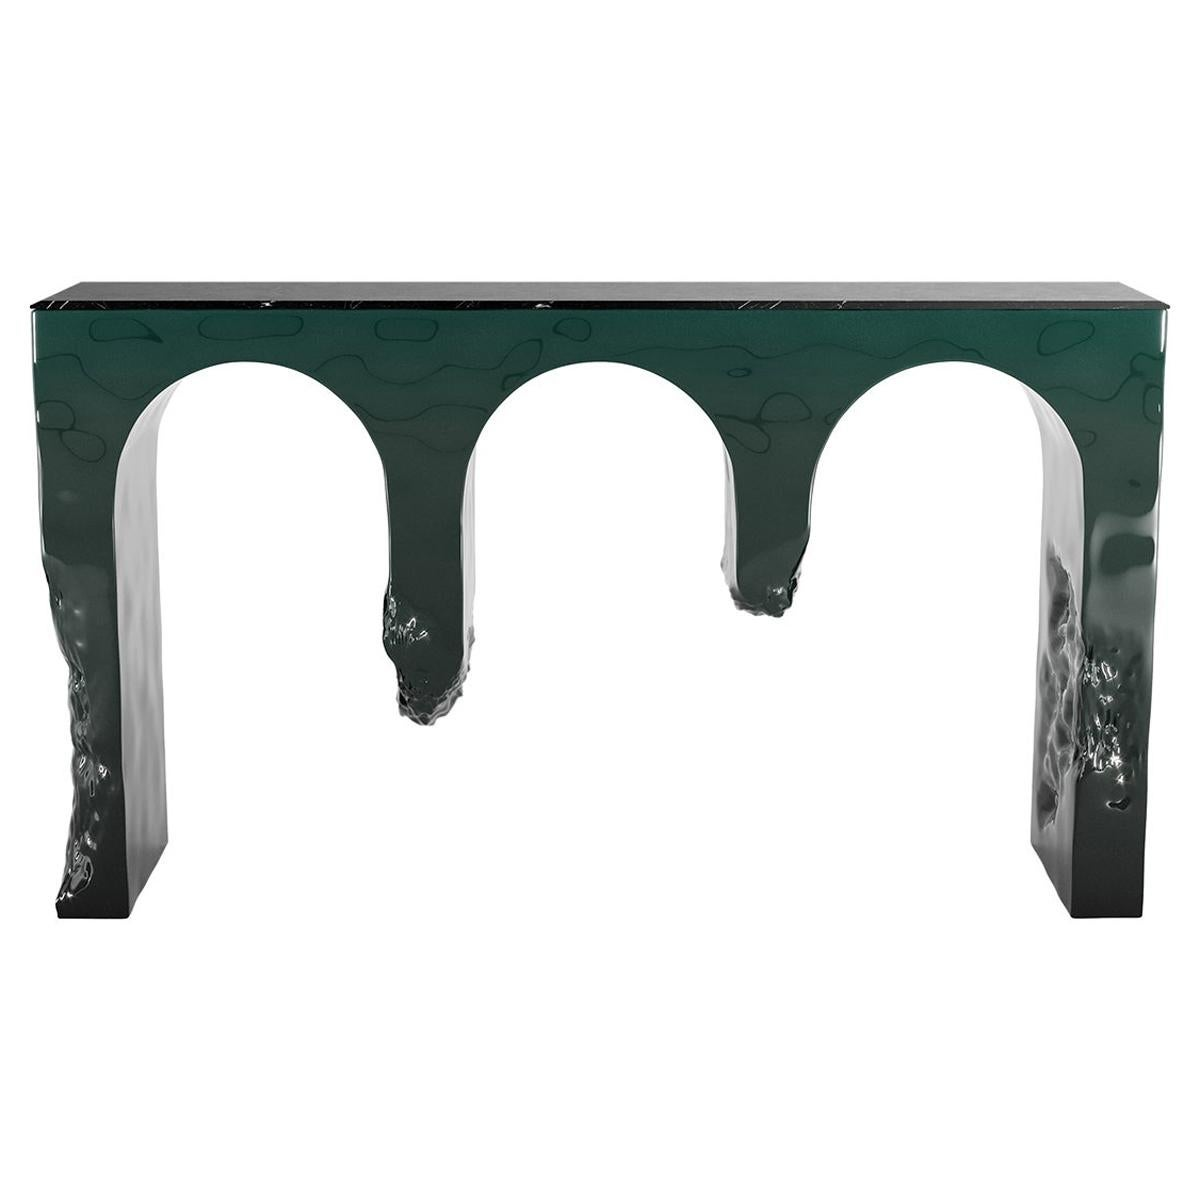 21th Century Modern Console Table Black Marquina Marble, Green Gradient & Wood